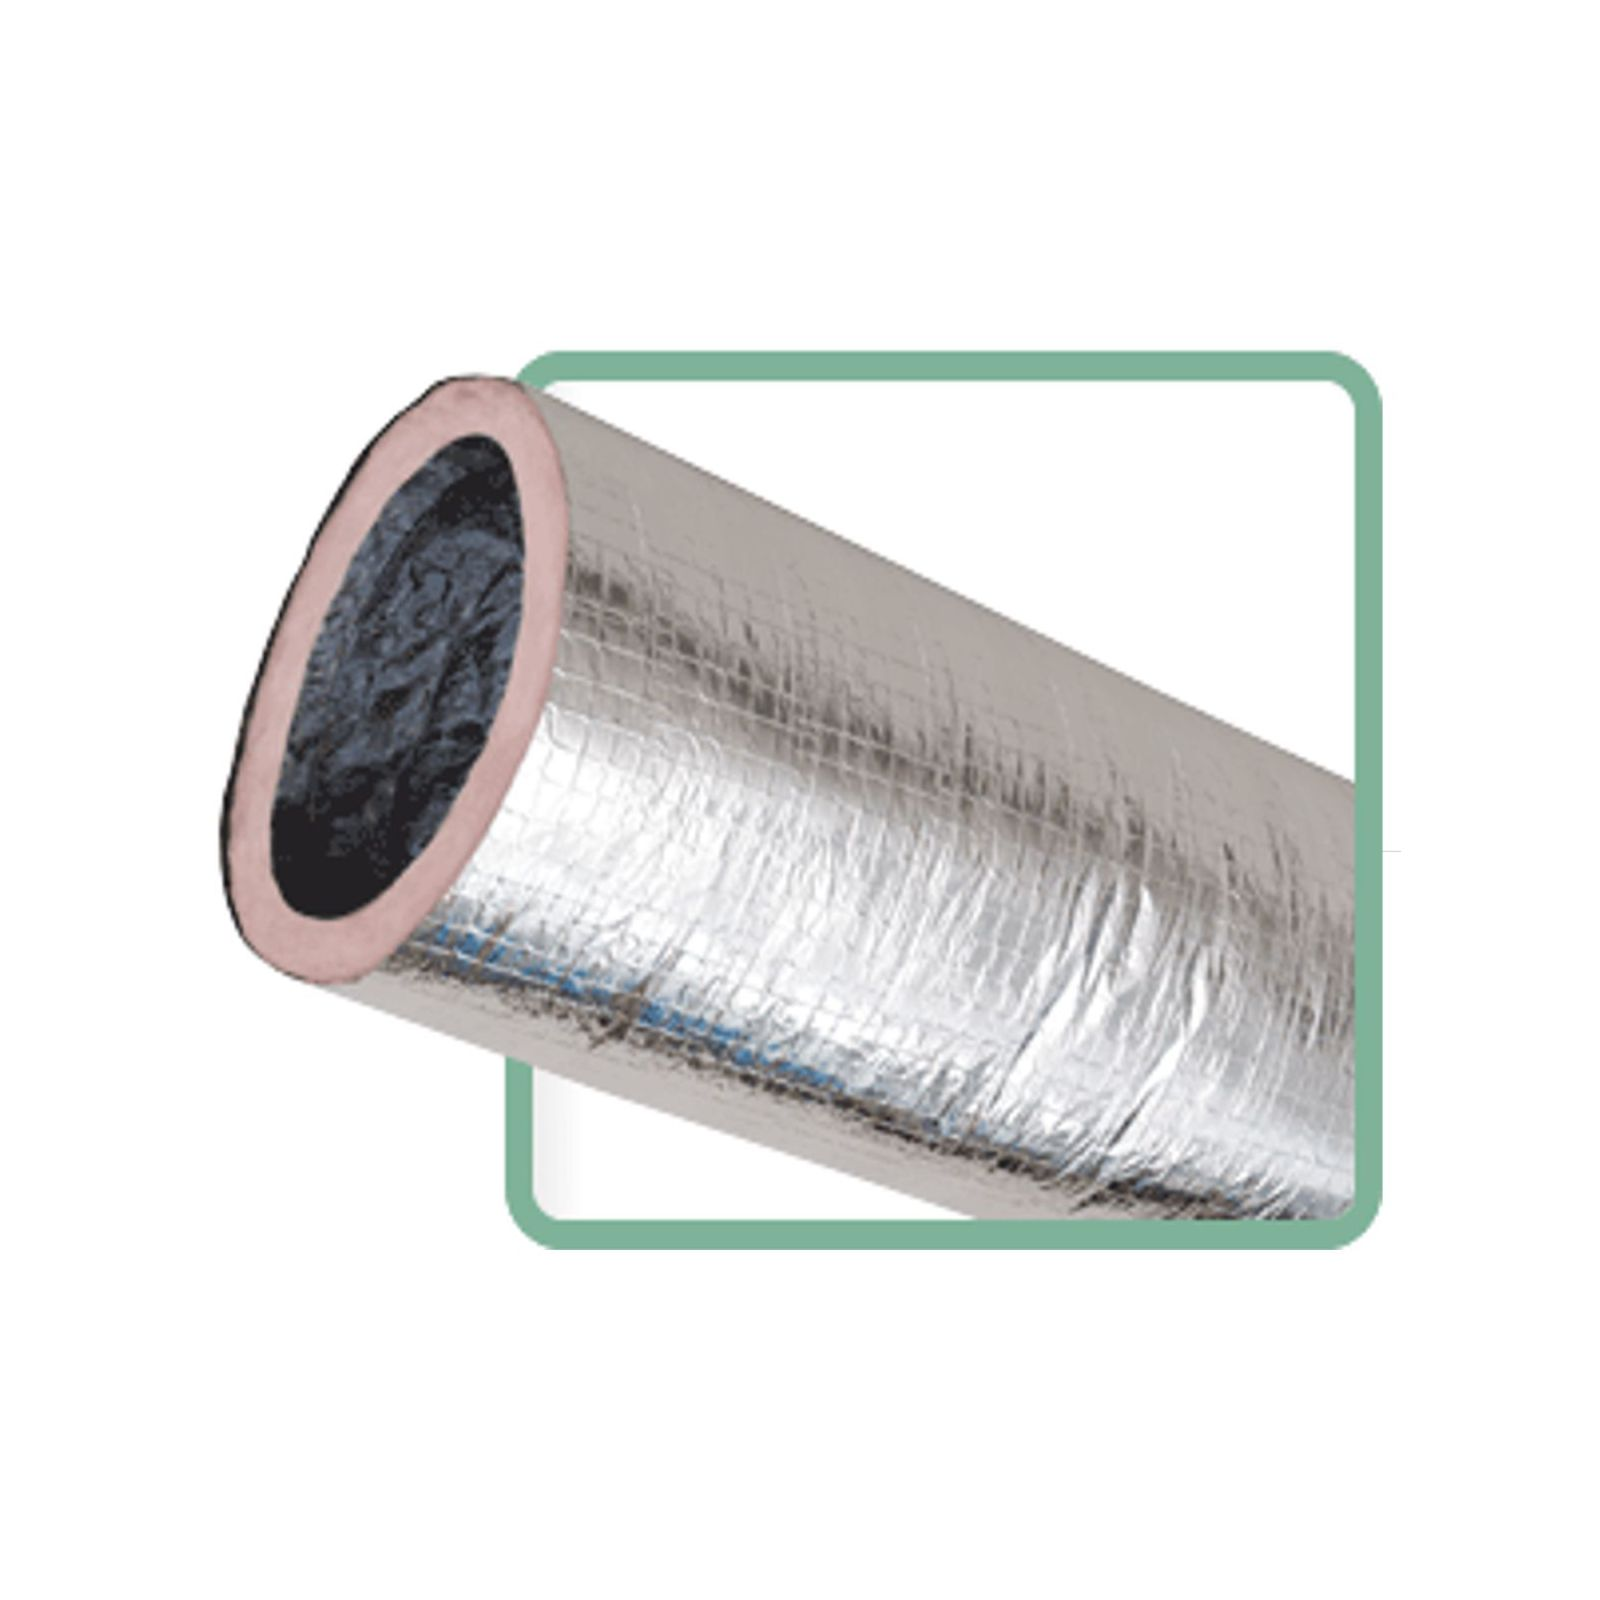 "Thermaflex 056316000107 - KM Silver Flex-Vent Insulated Flexible Duct Assembly, 16"" X 7', R8"